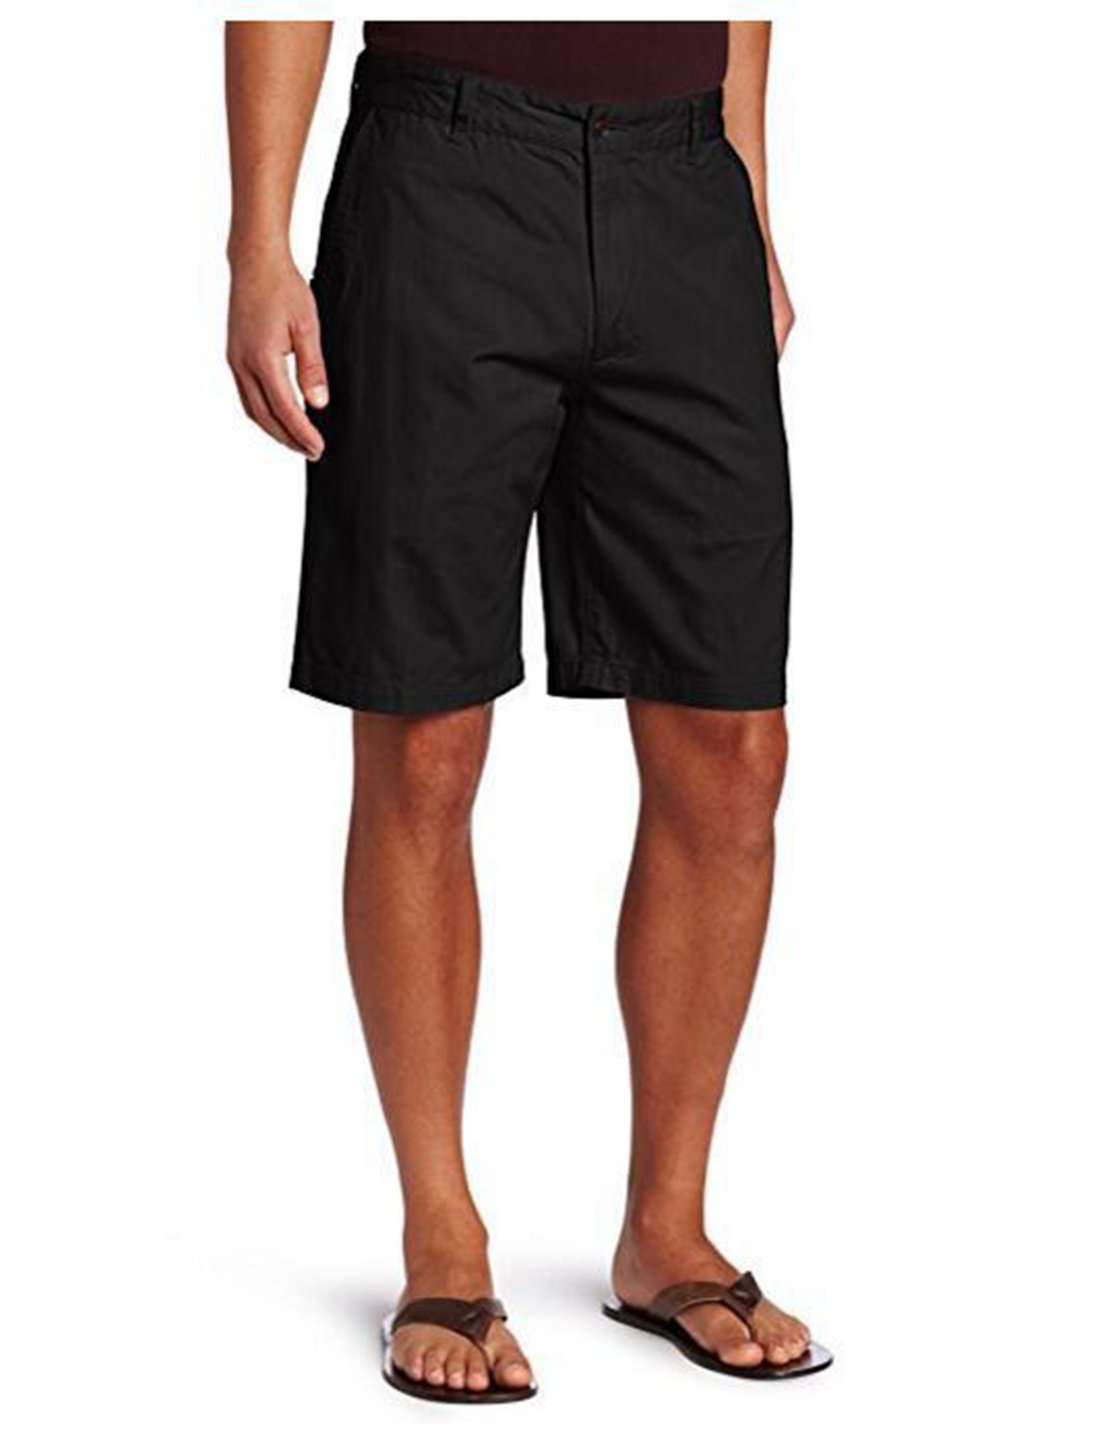 Enfei Men's Lightweight Sport Casual Classic Fit Summer Wear Shorts with Pockets